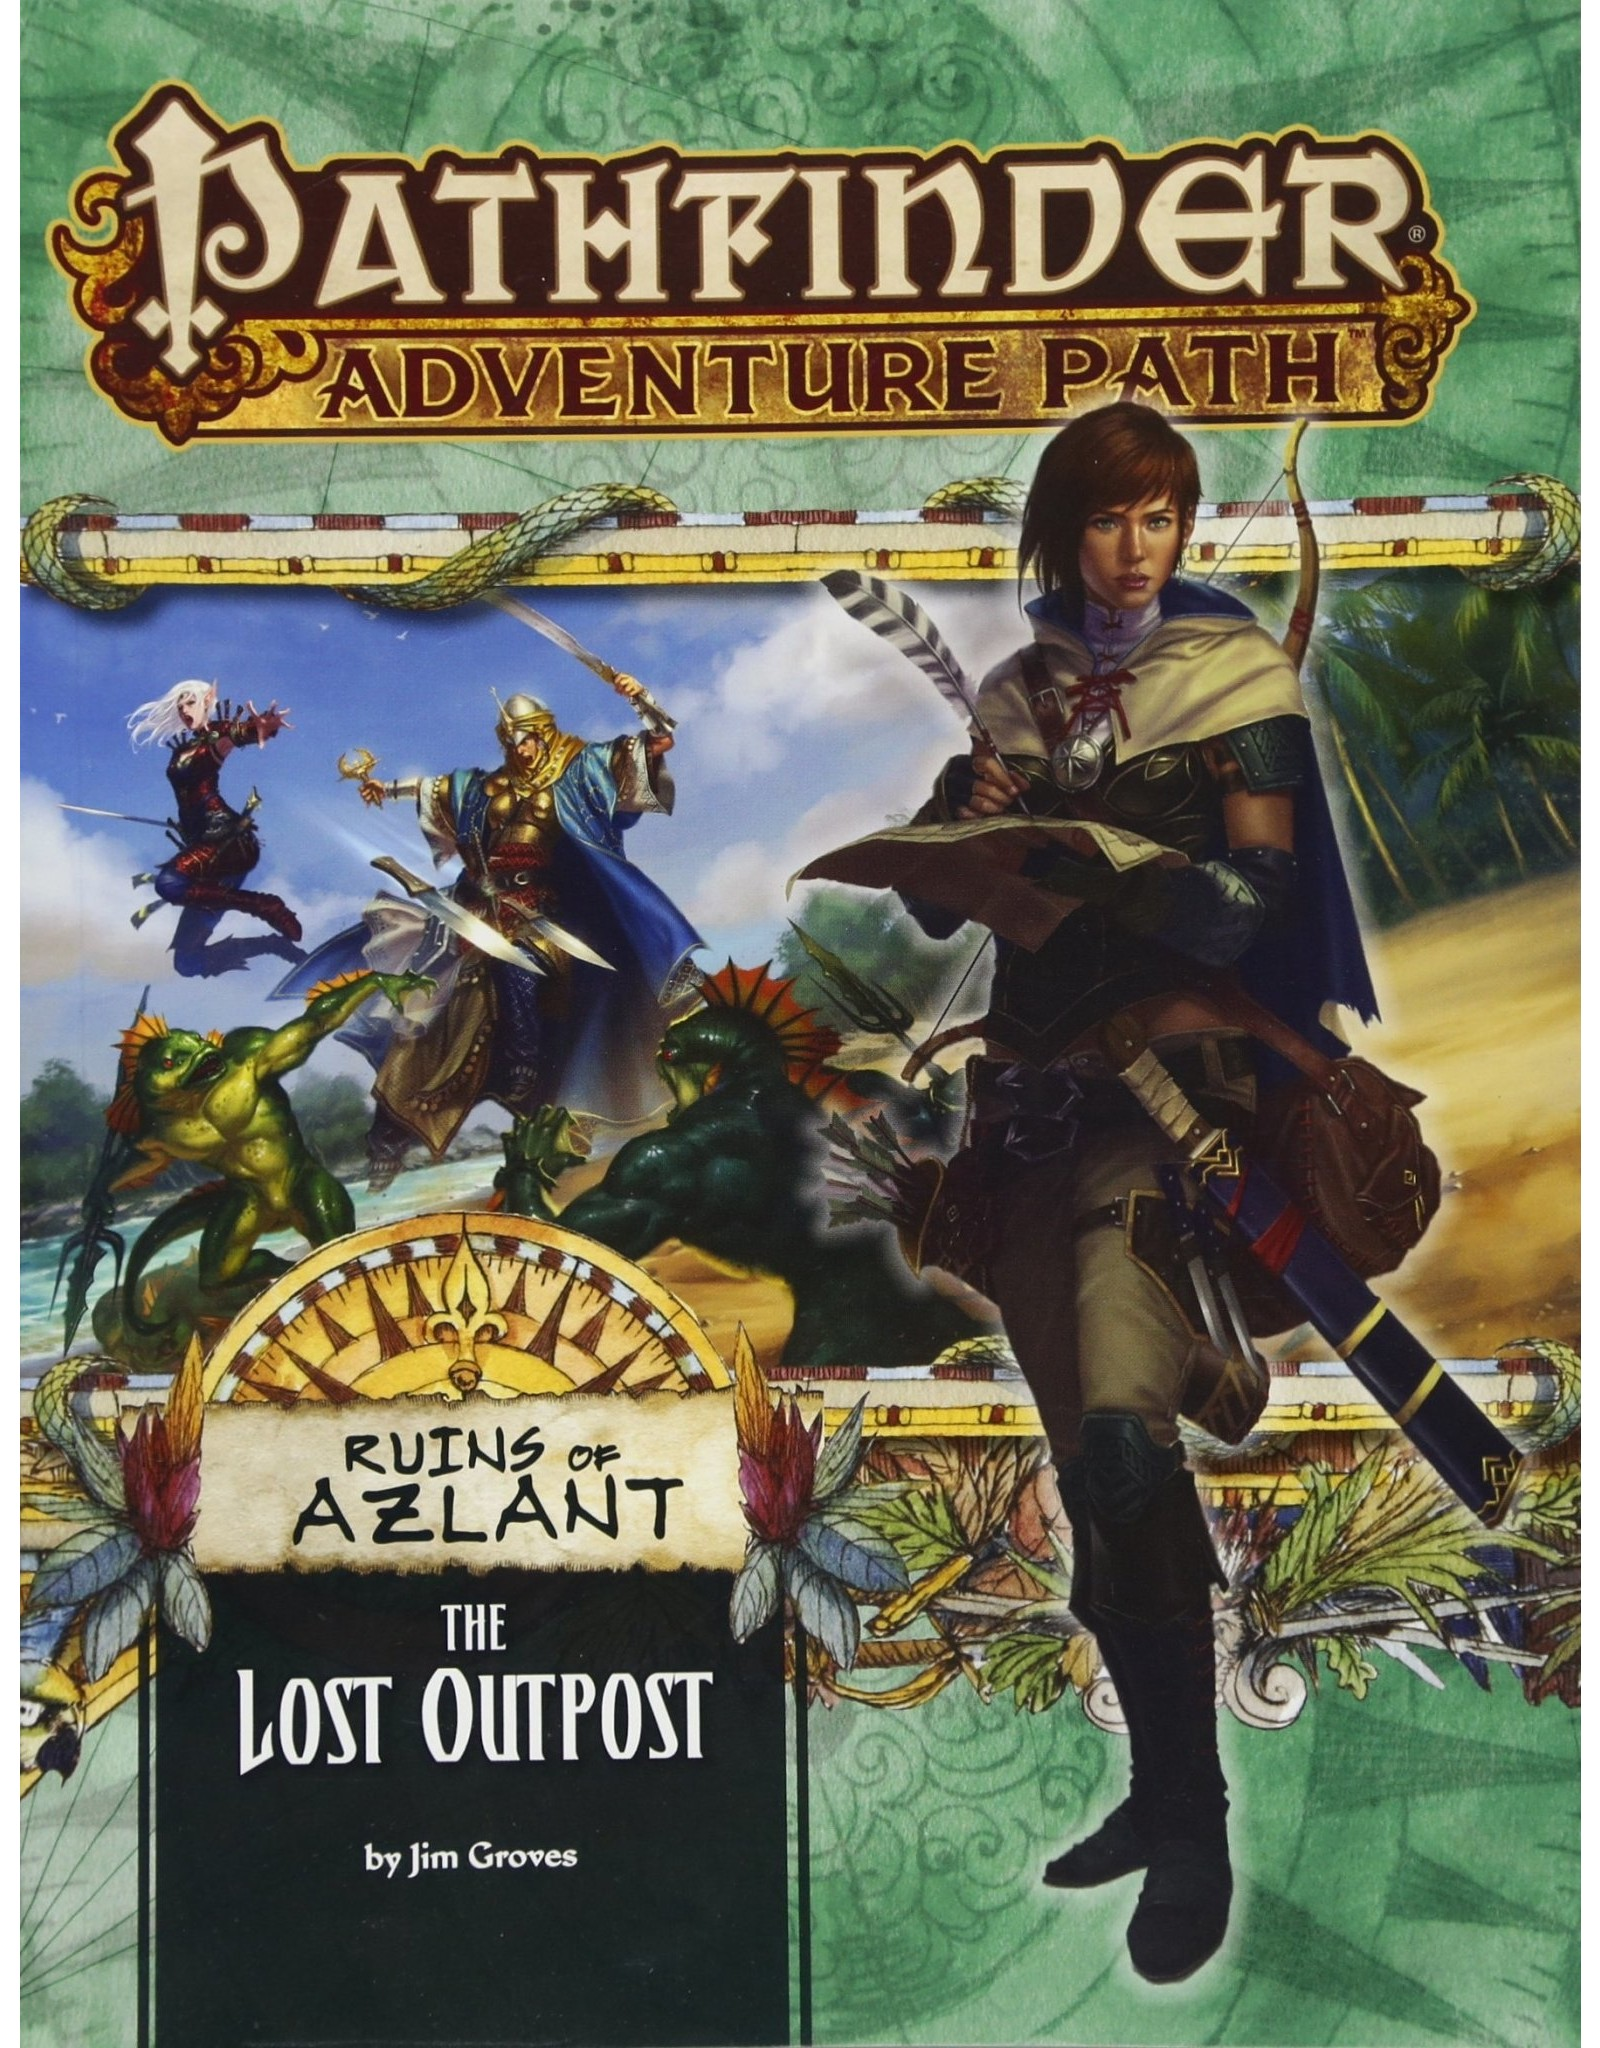 Pathfinder Adventure Path: Ruins of Azlant 1 The Lost Outpost